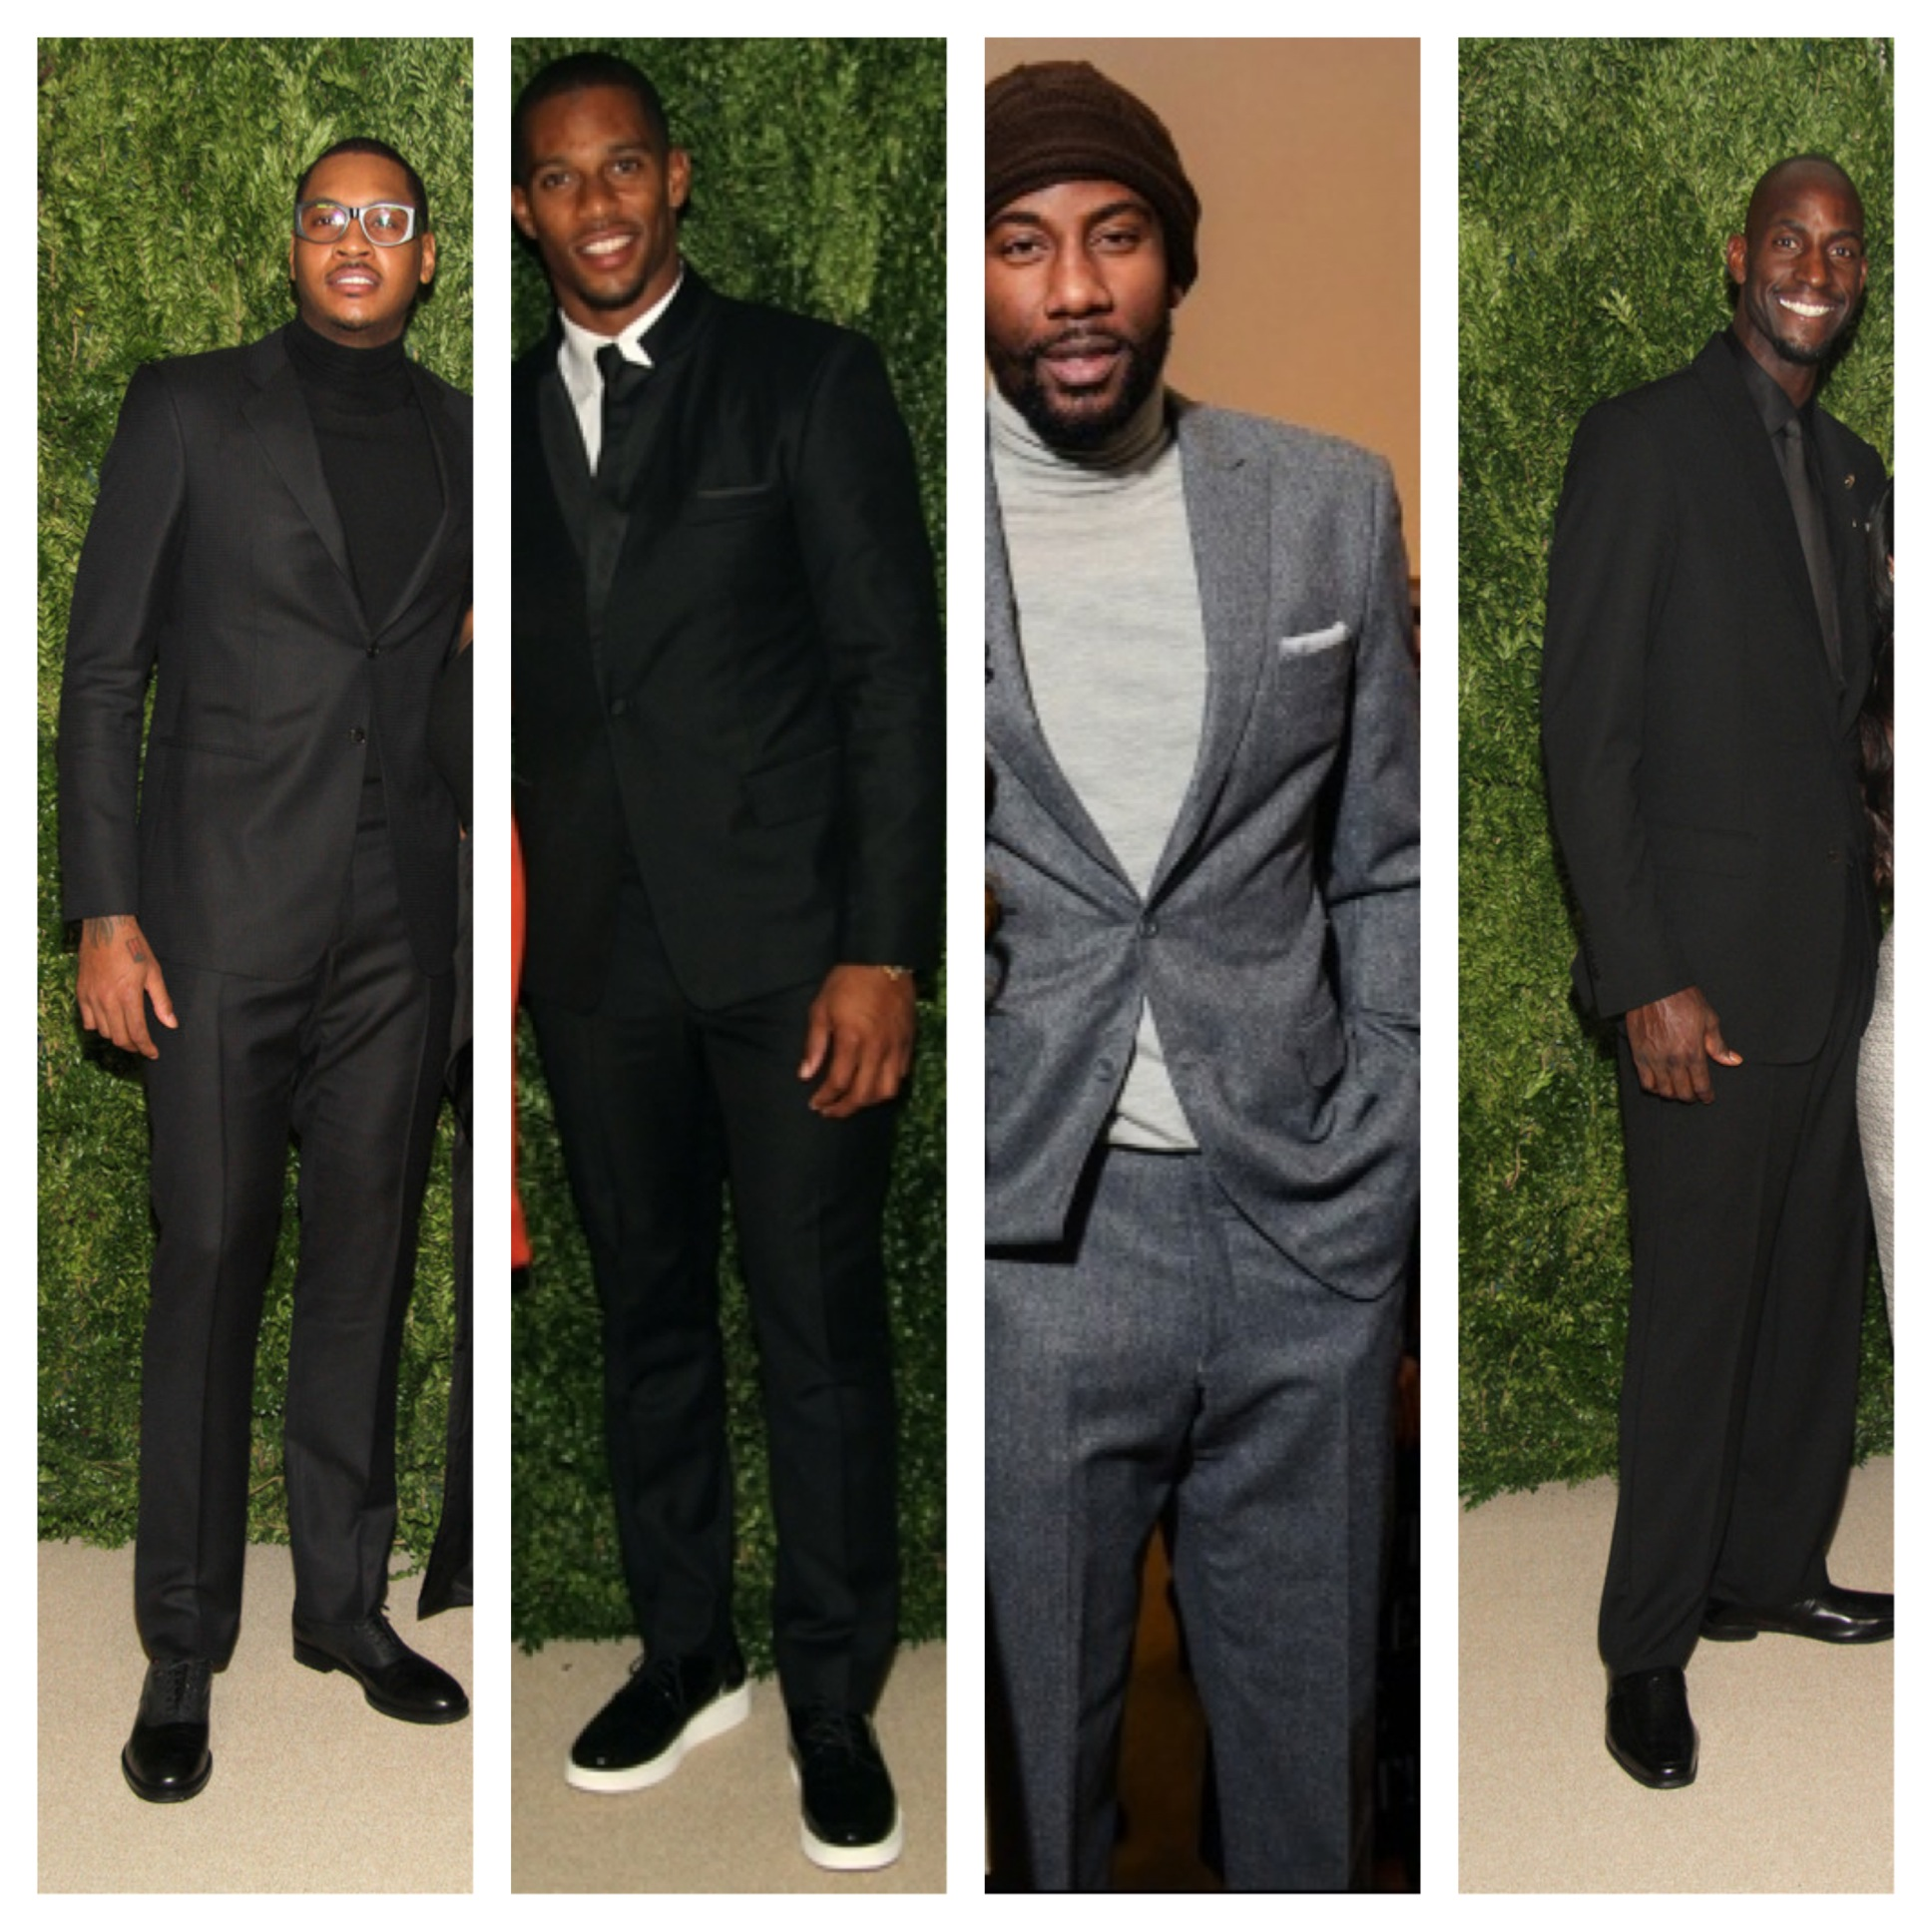 Carmelo-Anthony-Victor-Cruz-Amare-Stoudemire-Kevin-Garnett-2013-CFDA-Vogue-Fashion-Fund-awards